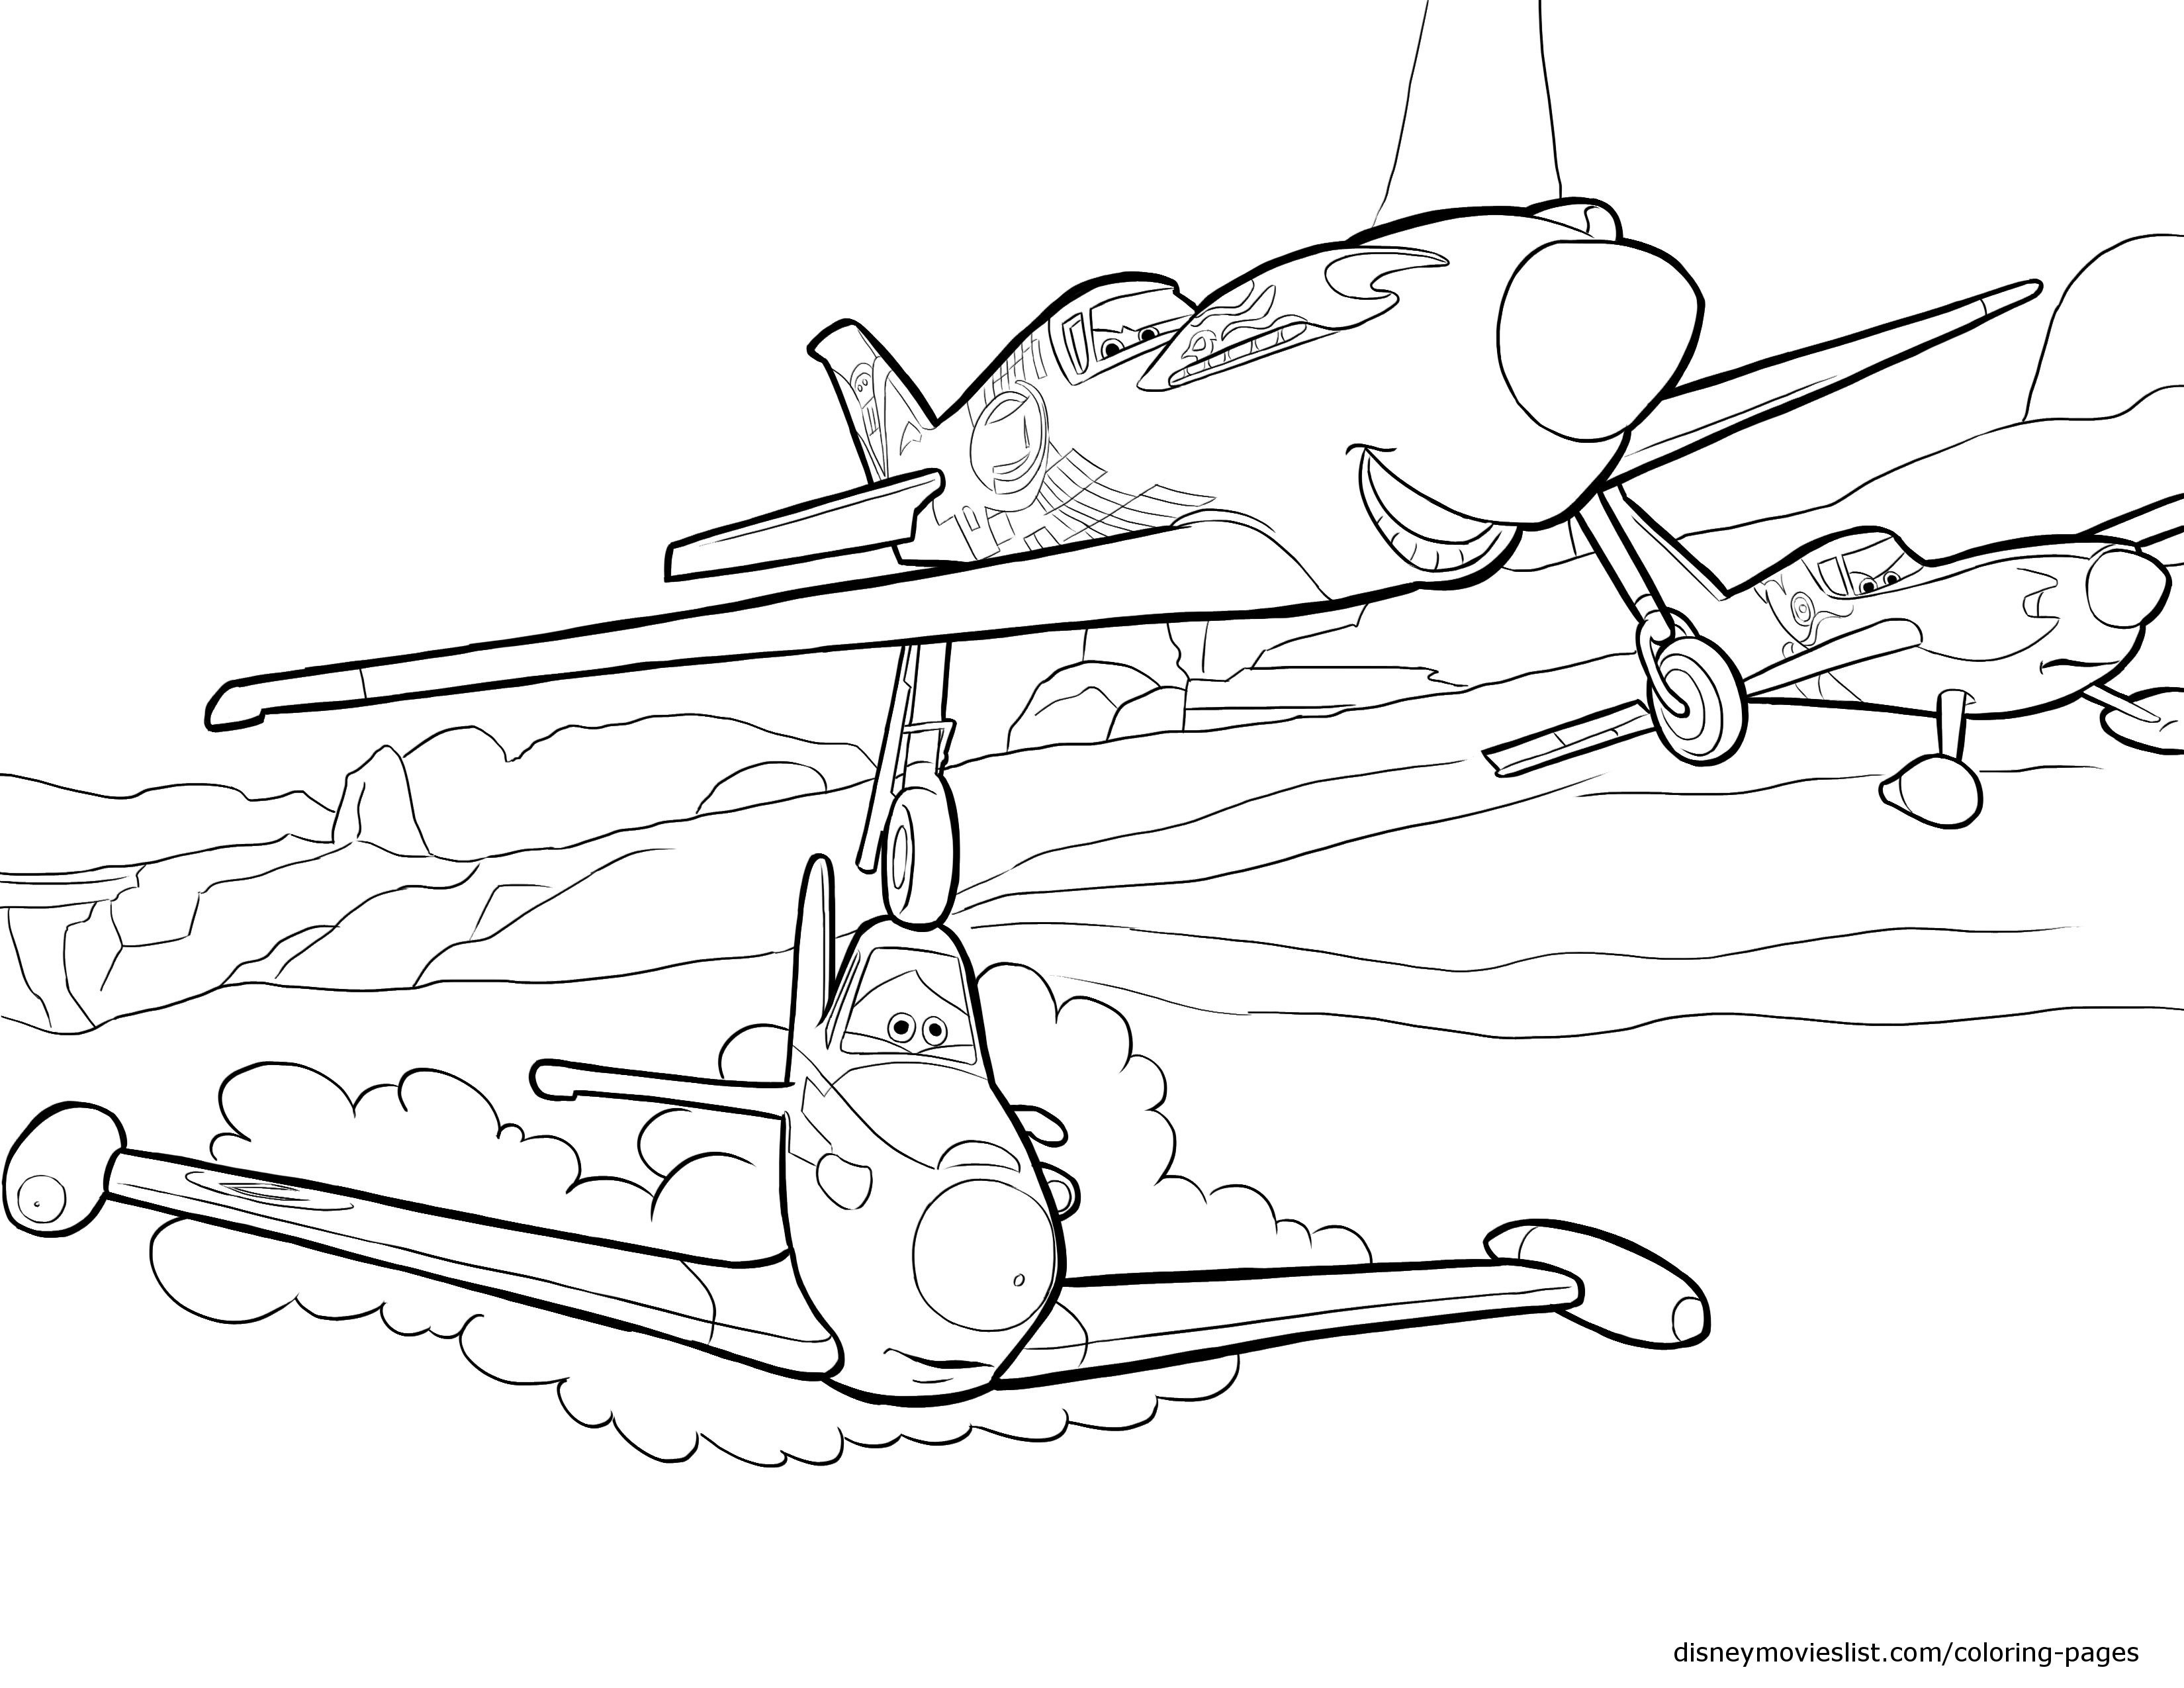 coloring pages airplanes paper airplane coloring page at getcoloringscom free airplanes pages coloring 1 1